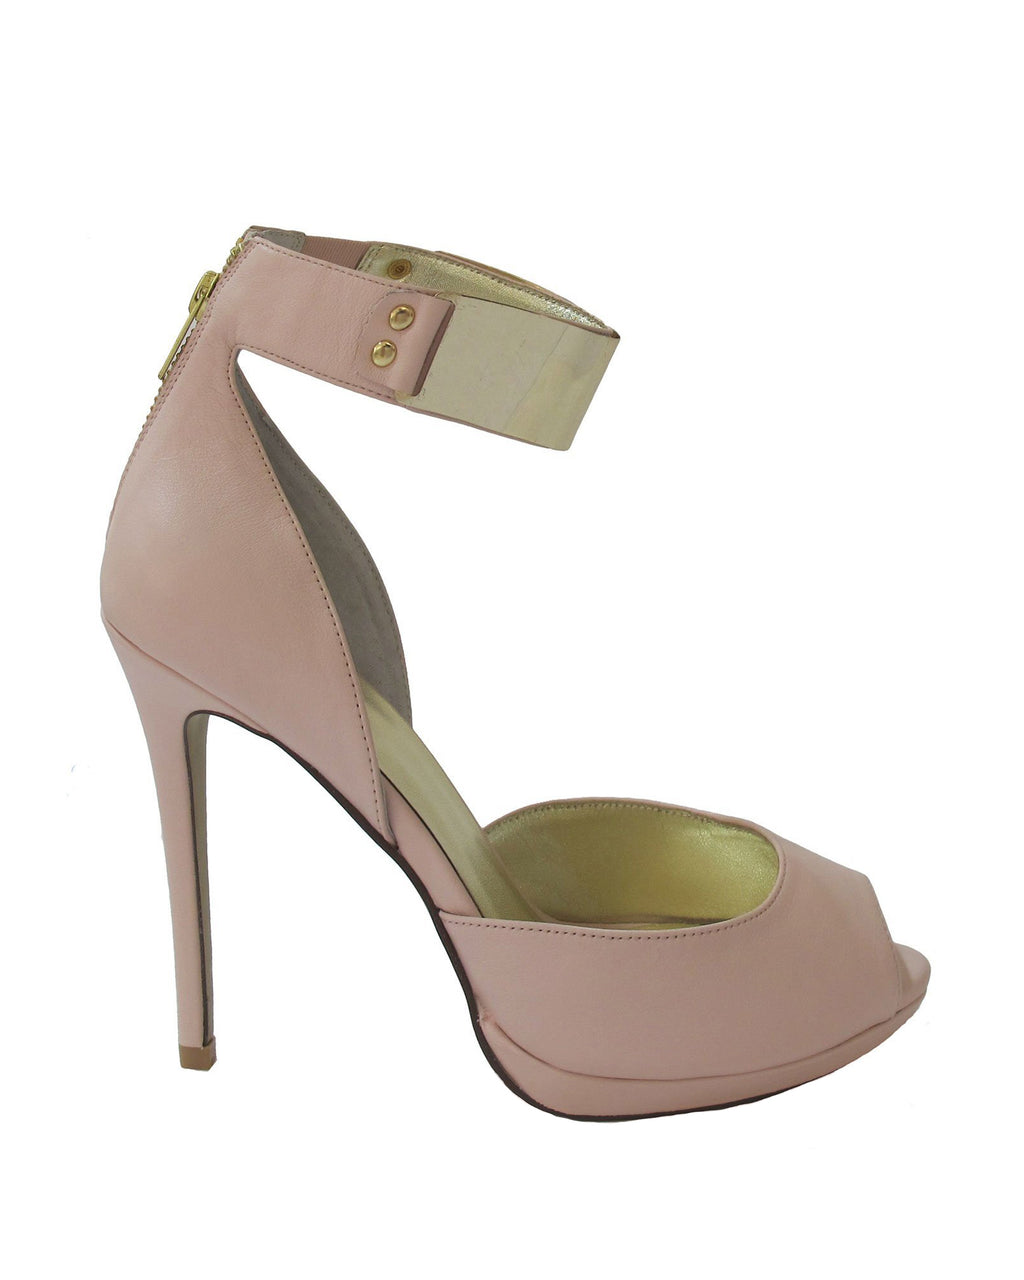 Izoa Nice Heels Pink Nude (SIZE 39 ONLY)